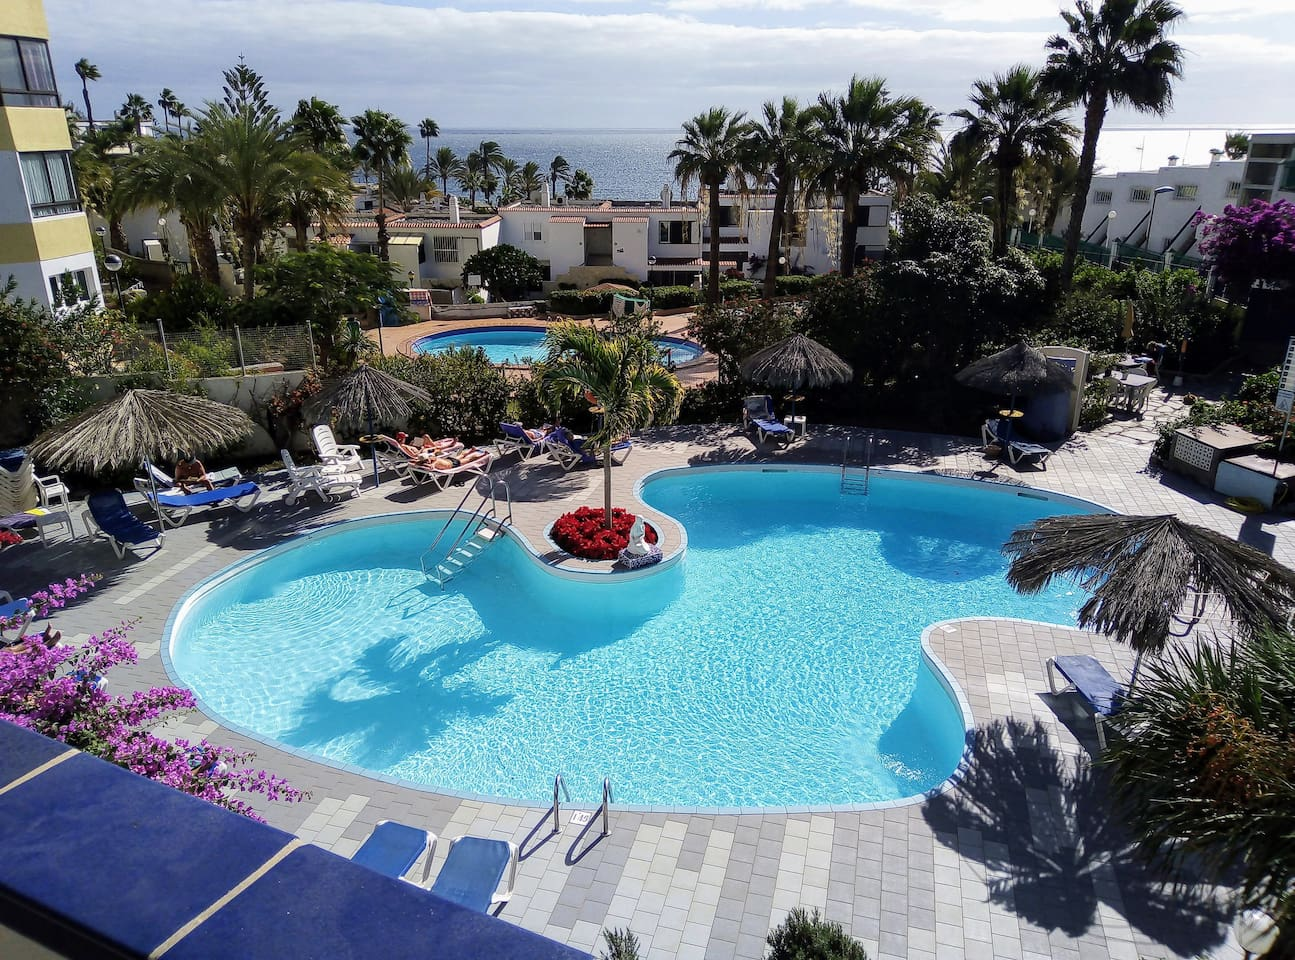 Pool and ocean view from the balcony